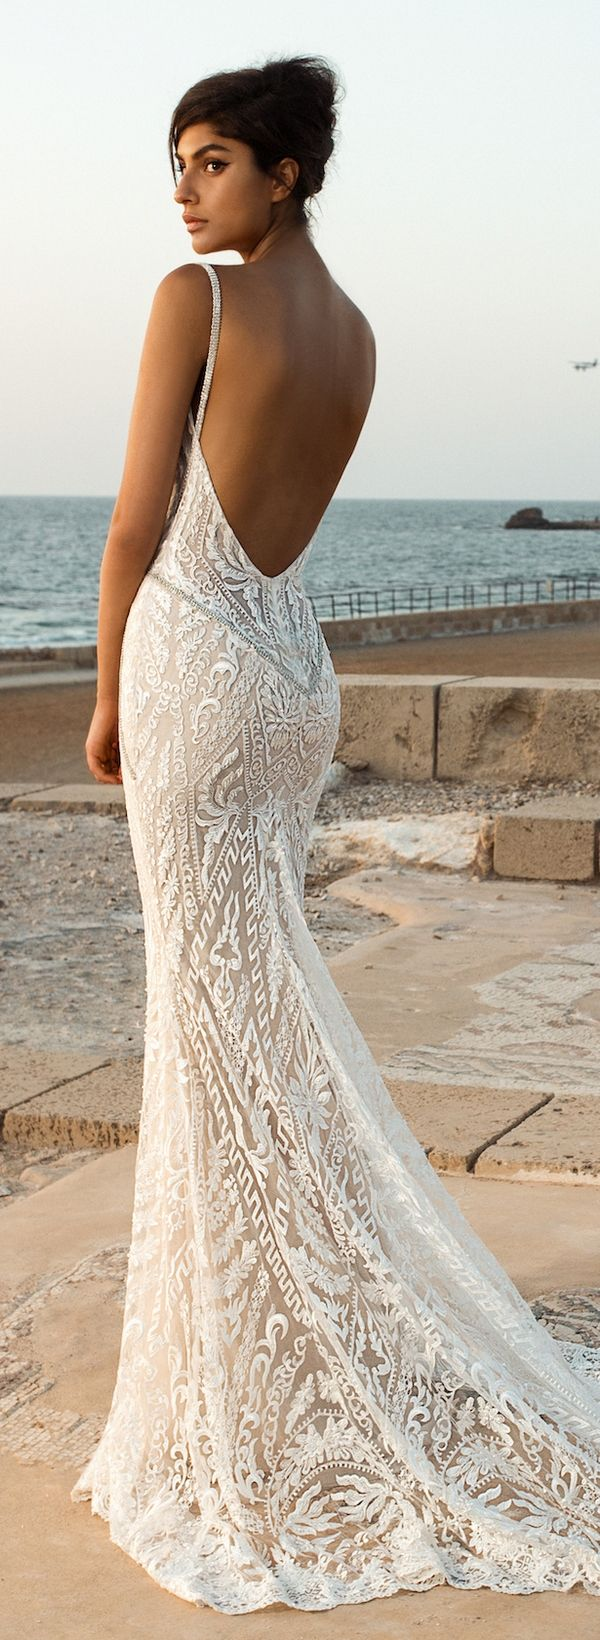 fall wedding outfits outdoor wedding dress 25 Best Ideas about Fall Wedding Outfits on Pinterest Country wedding outfits Country bridesmaid dresses and Fall wedding groomsmen